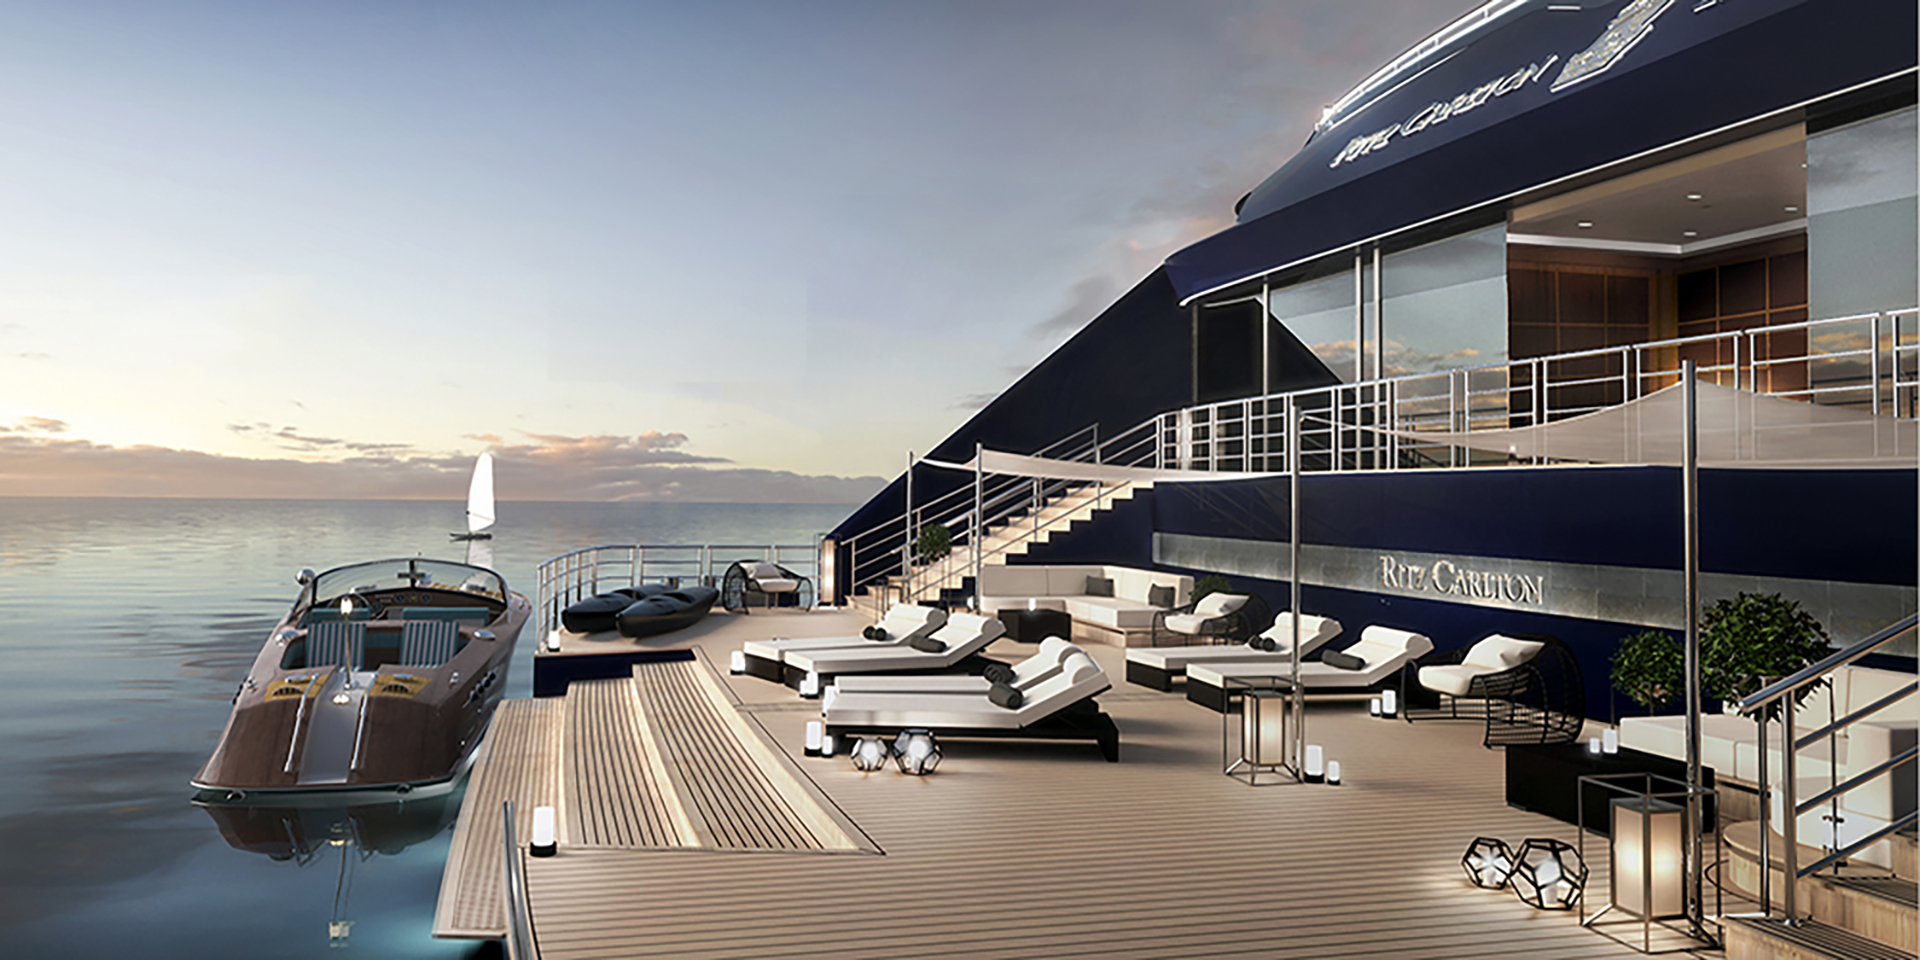 The-Ritz-Carlton-Yacht-Collection-marina-rendering-1